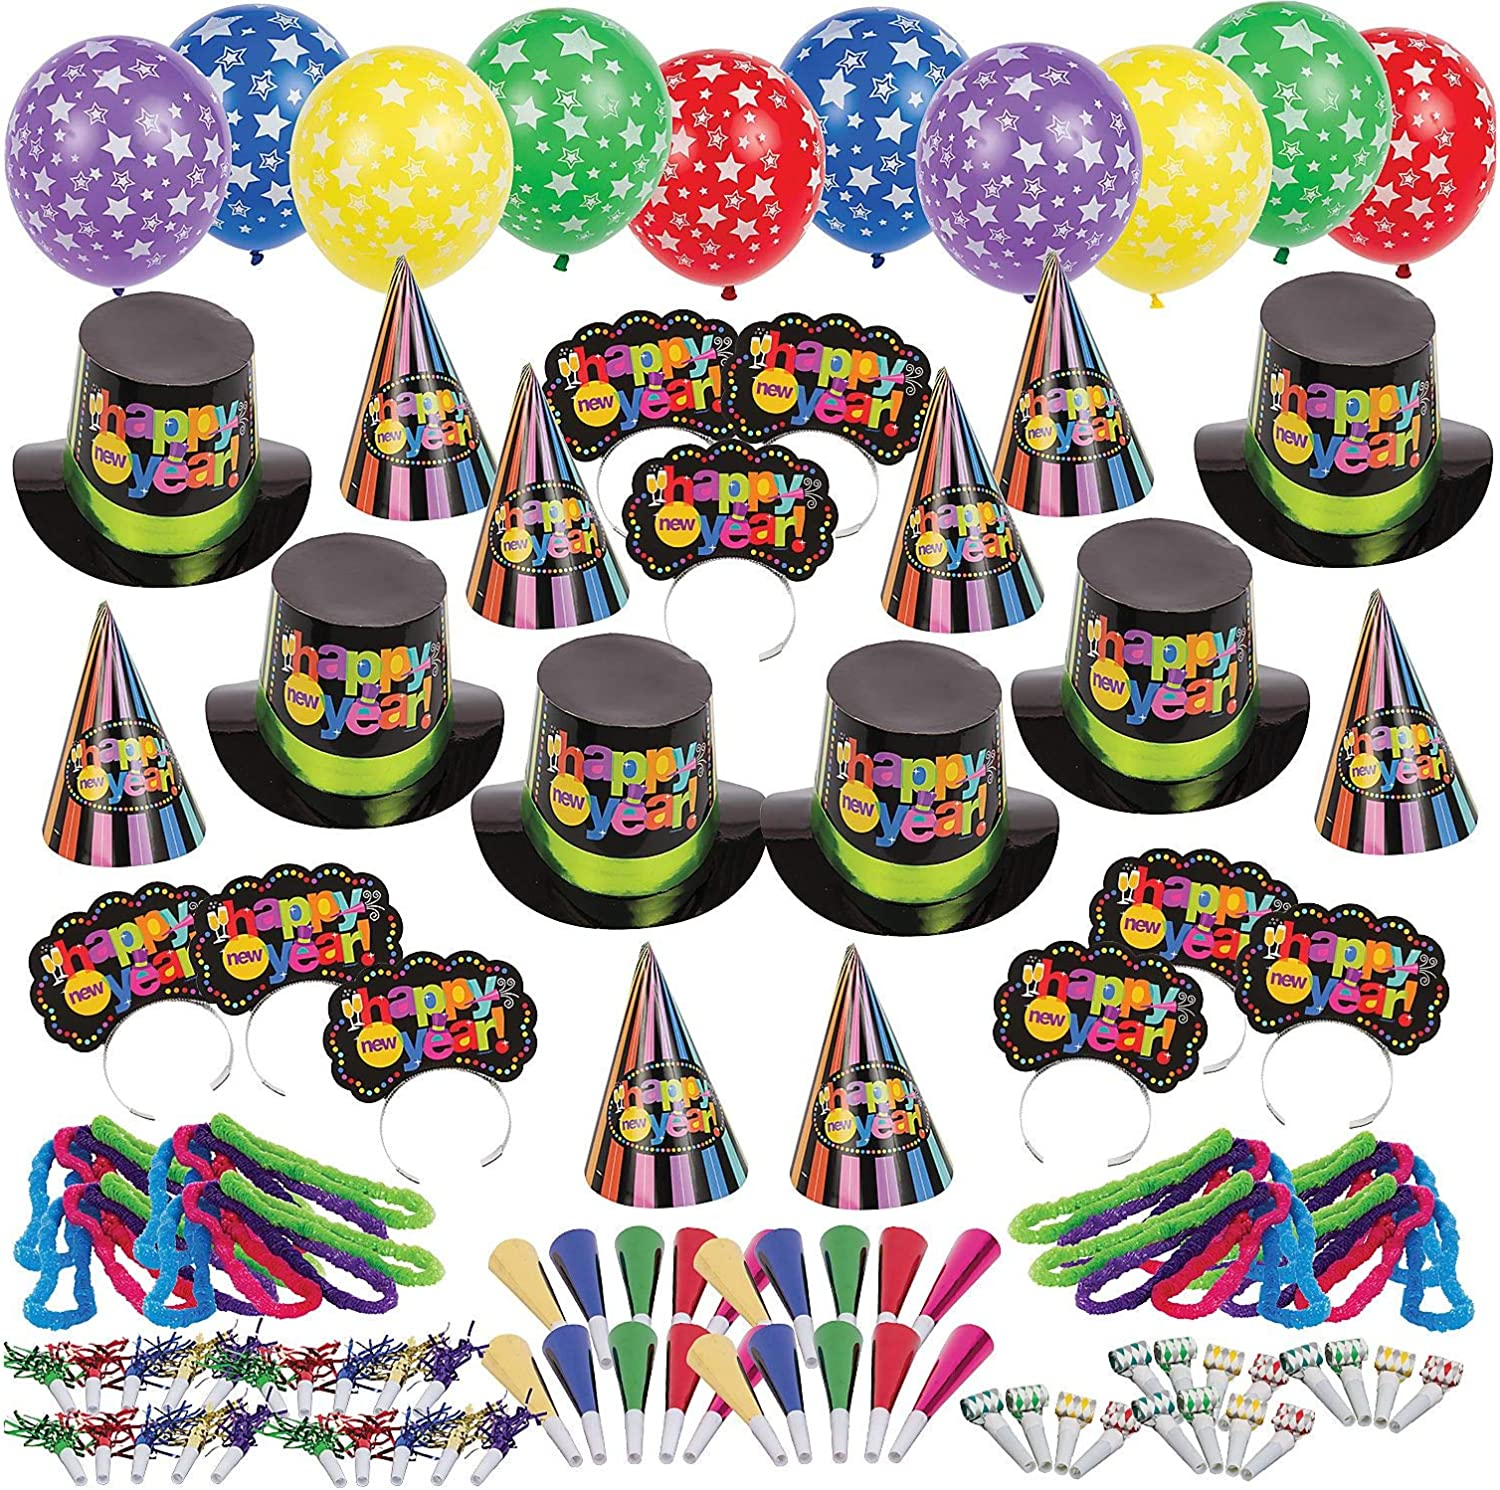 Party City New Years Eve Decorations  from images-na.ssl-images-amazon.com